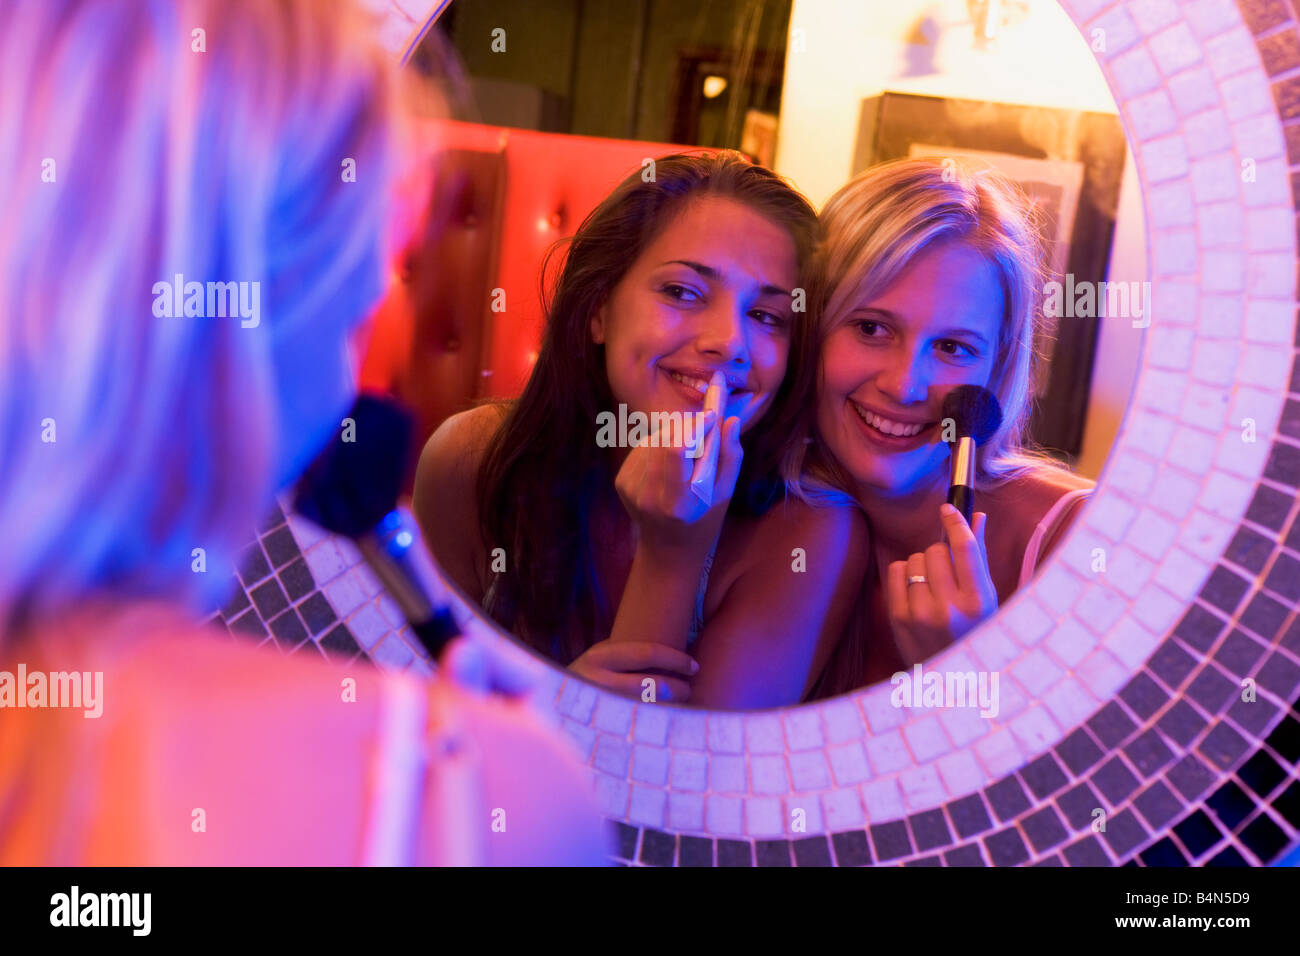 Two young women applying makeup in a mirror Stock Photo